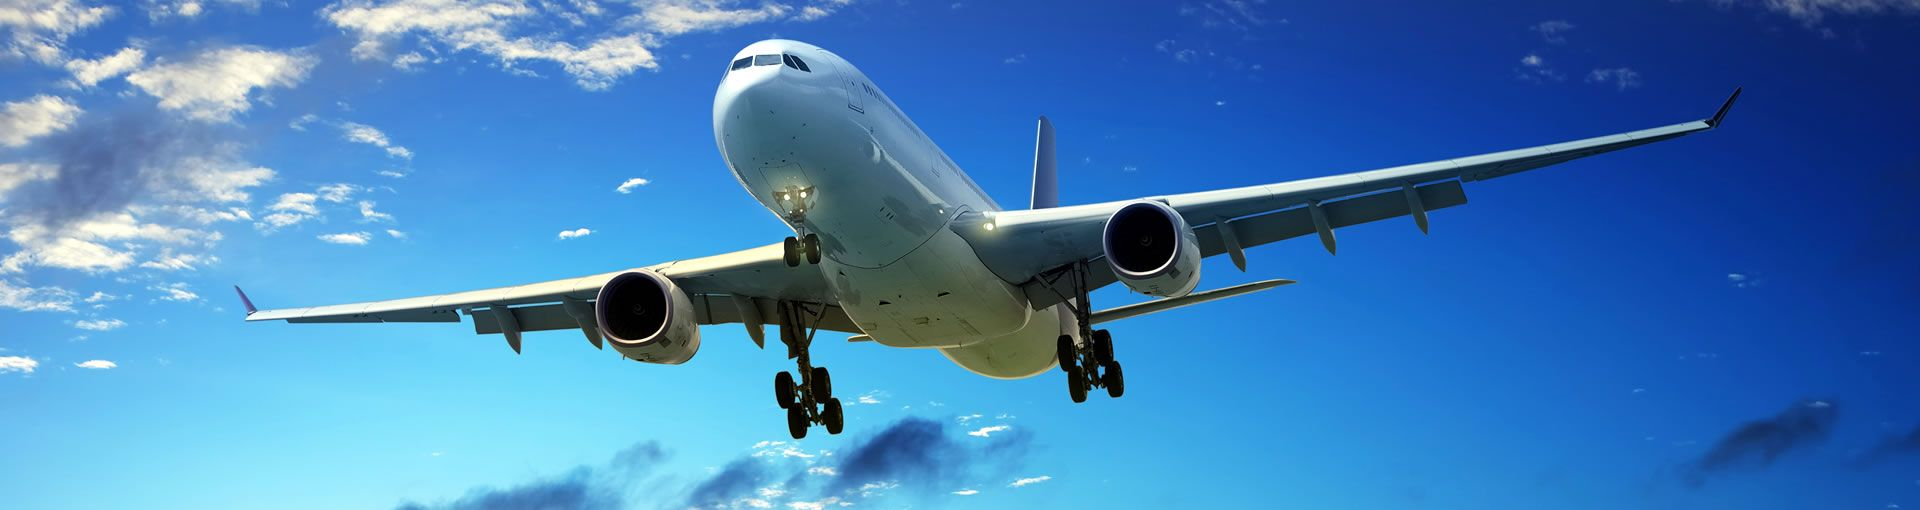 Airport Transportation Dallas Airport Transfer & Shuttle Services